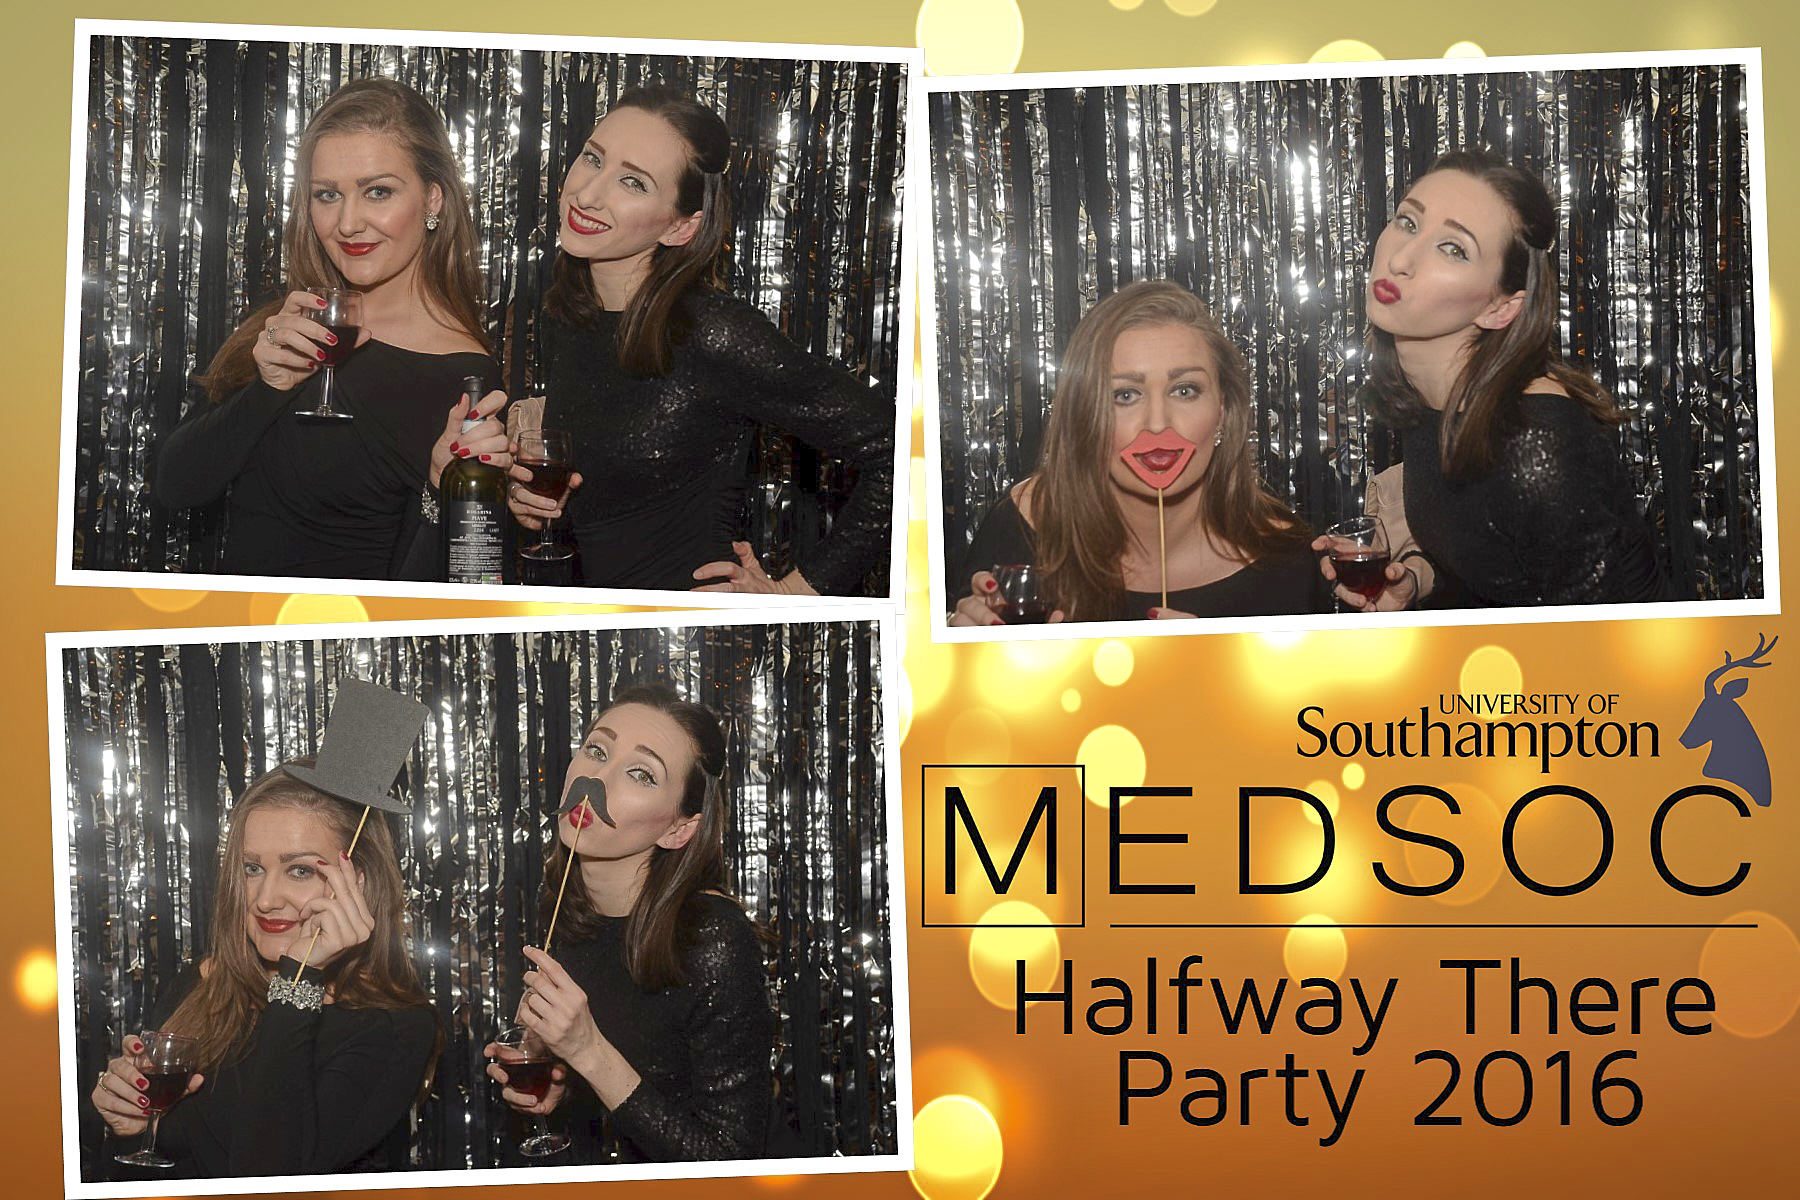 MedSoc Halfway There Party 2016 DS203651.jpg